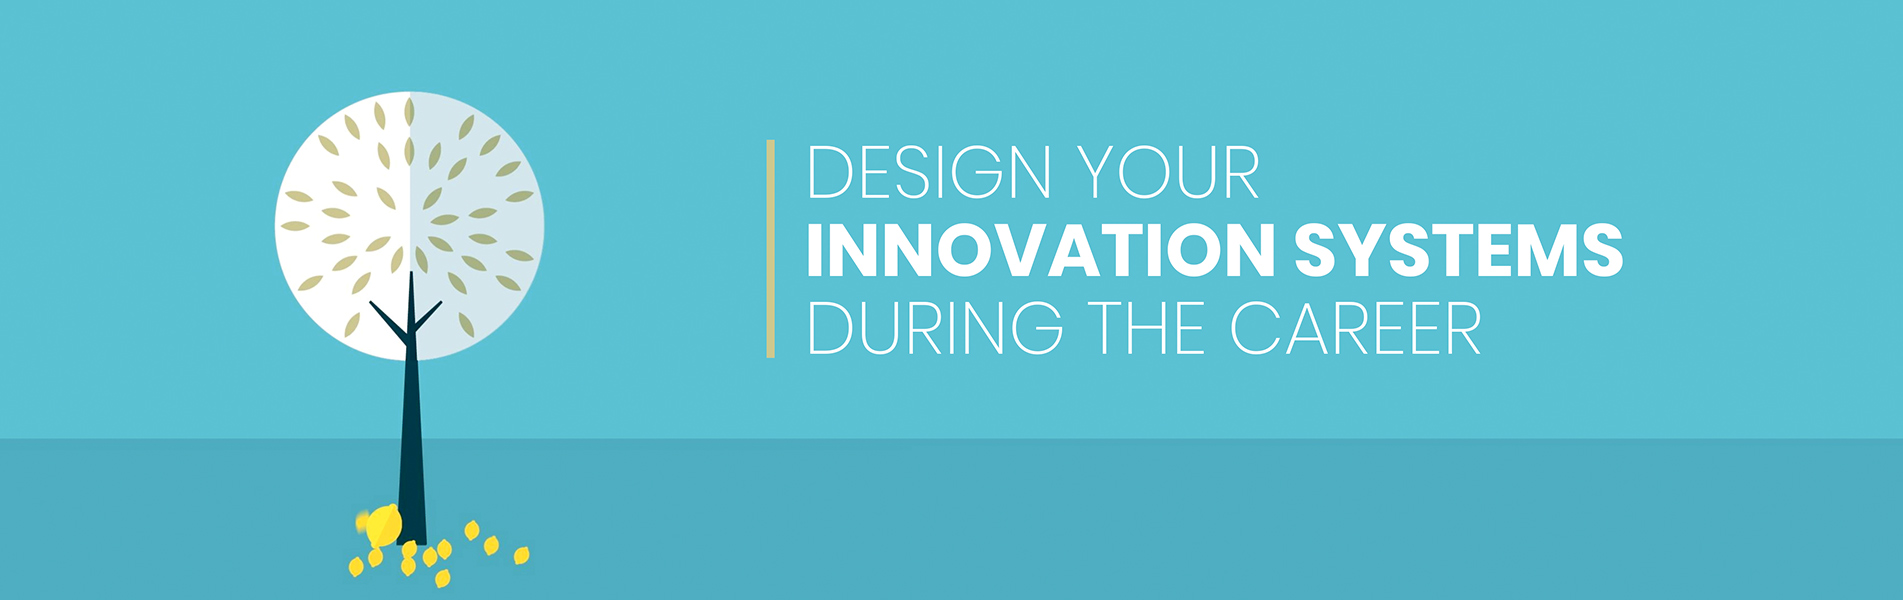 Design your innovation systems during the career